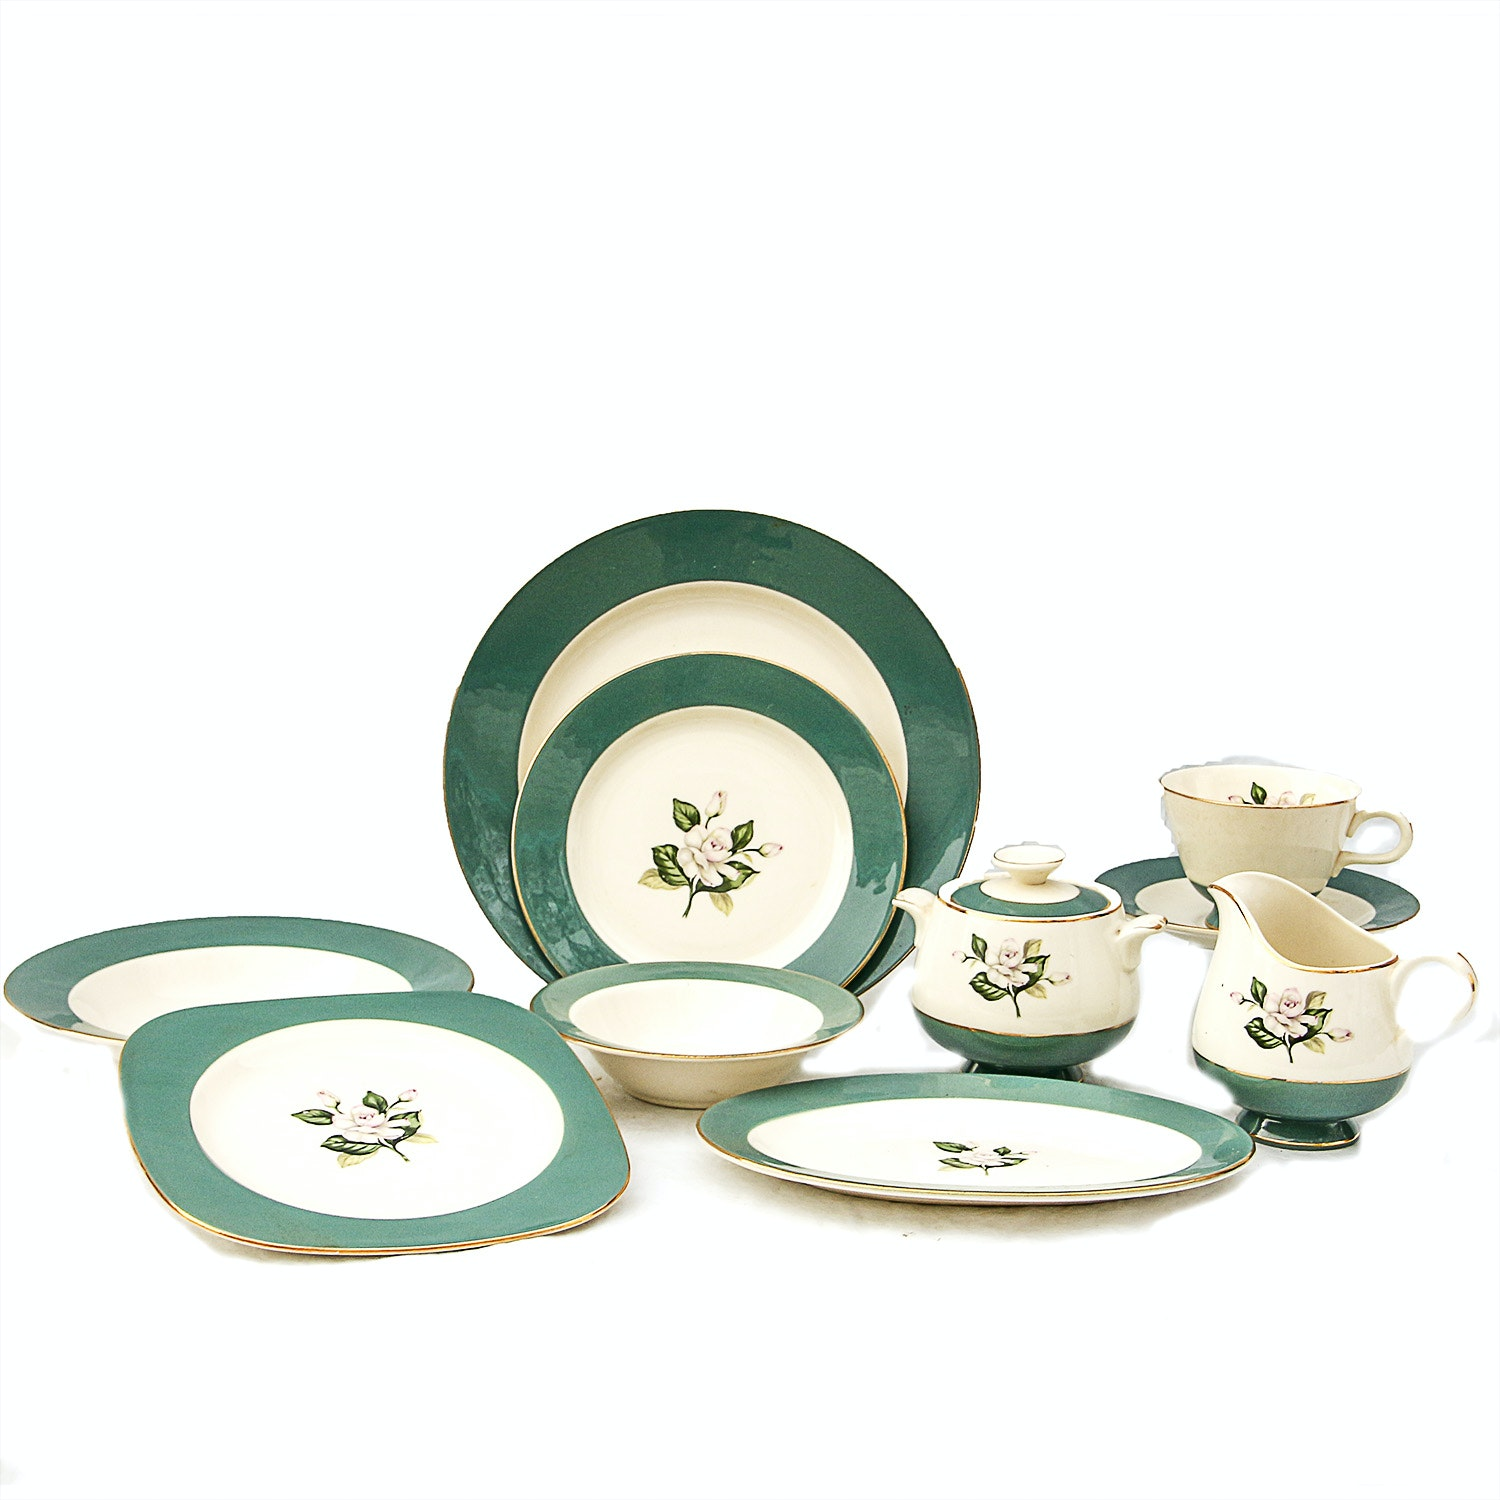 Fifty-Nine Piece Set of Century Service Corporation Semi Vitreous Dinnerware ...  sc 1 st  EBTH.com & Fifty-Nine Piece Set of Century Service Corporation Semi Vitreous ...